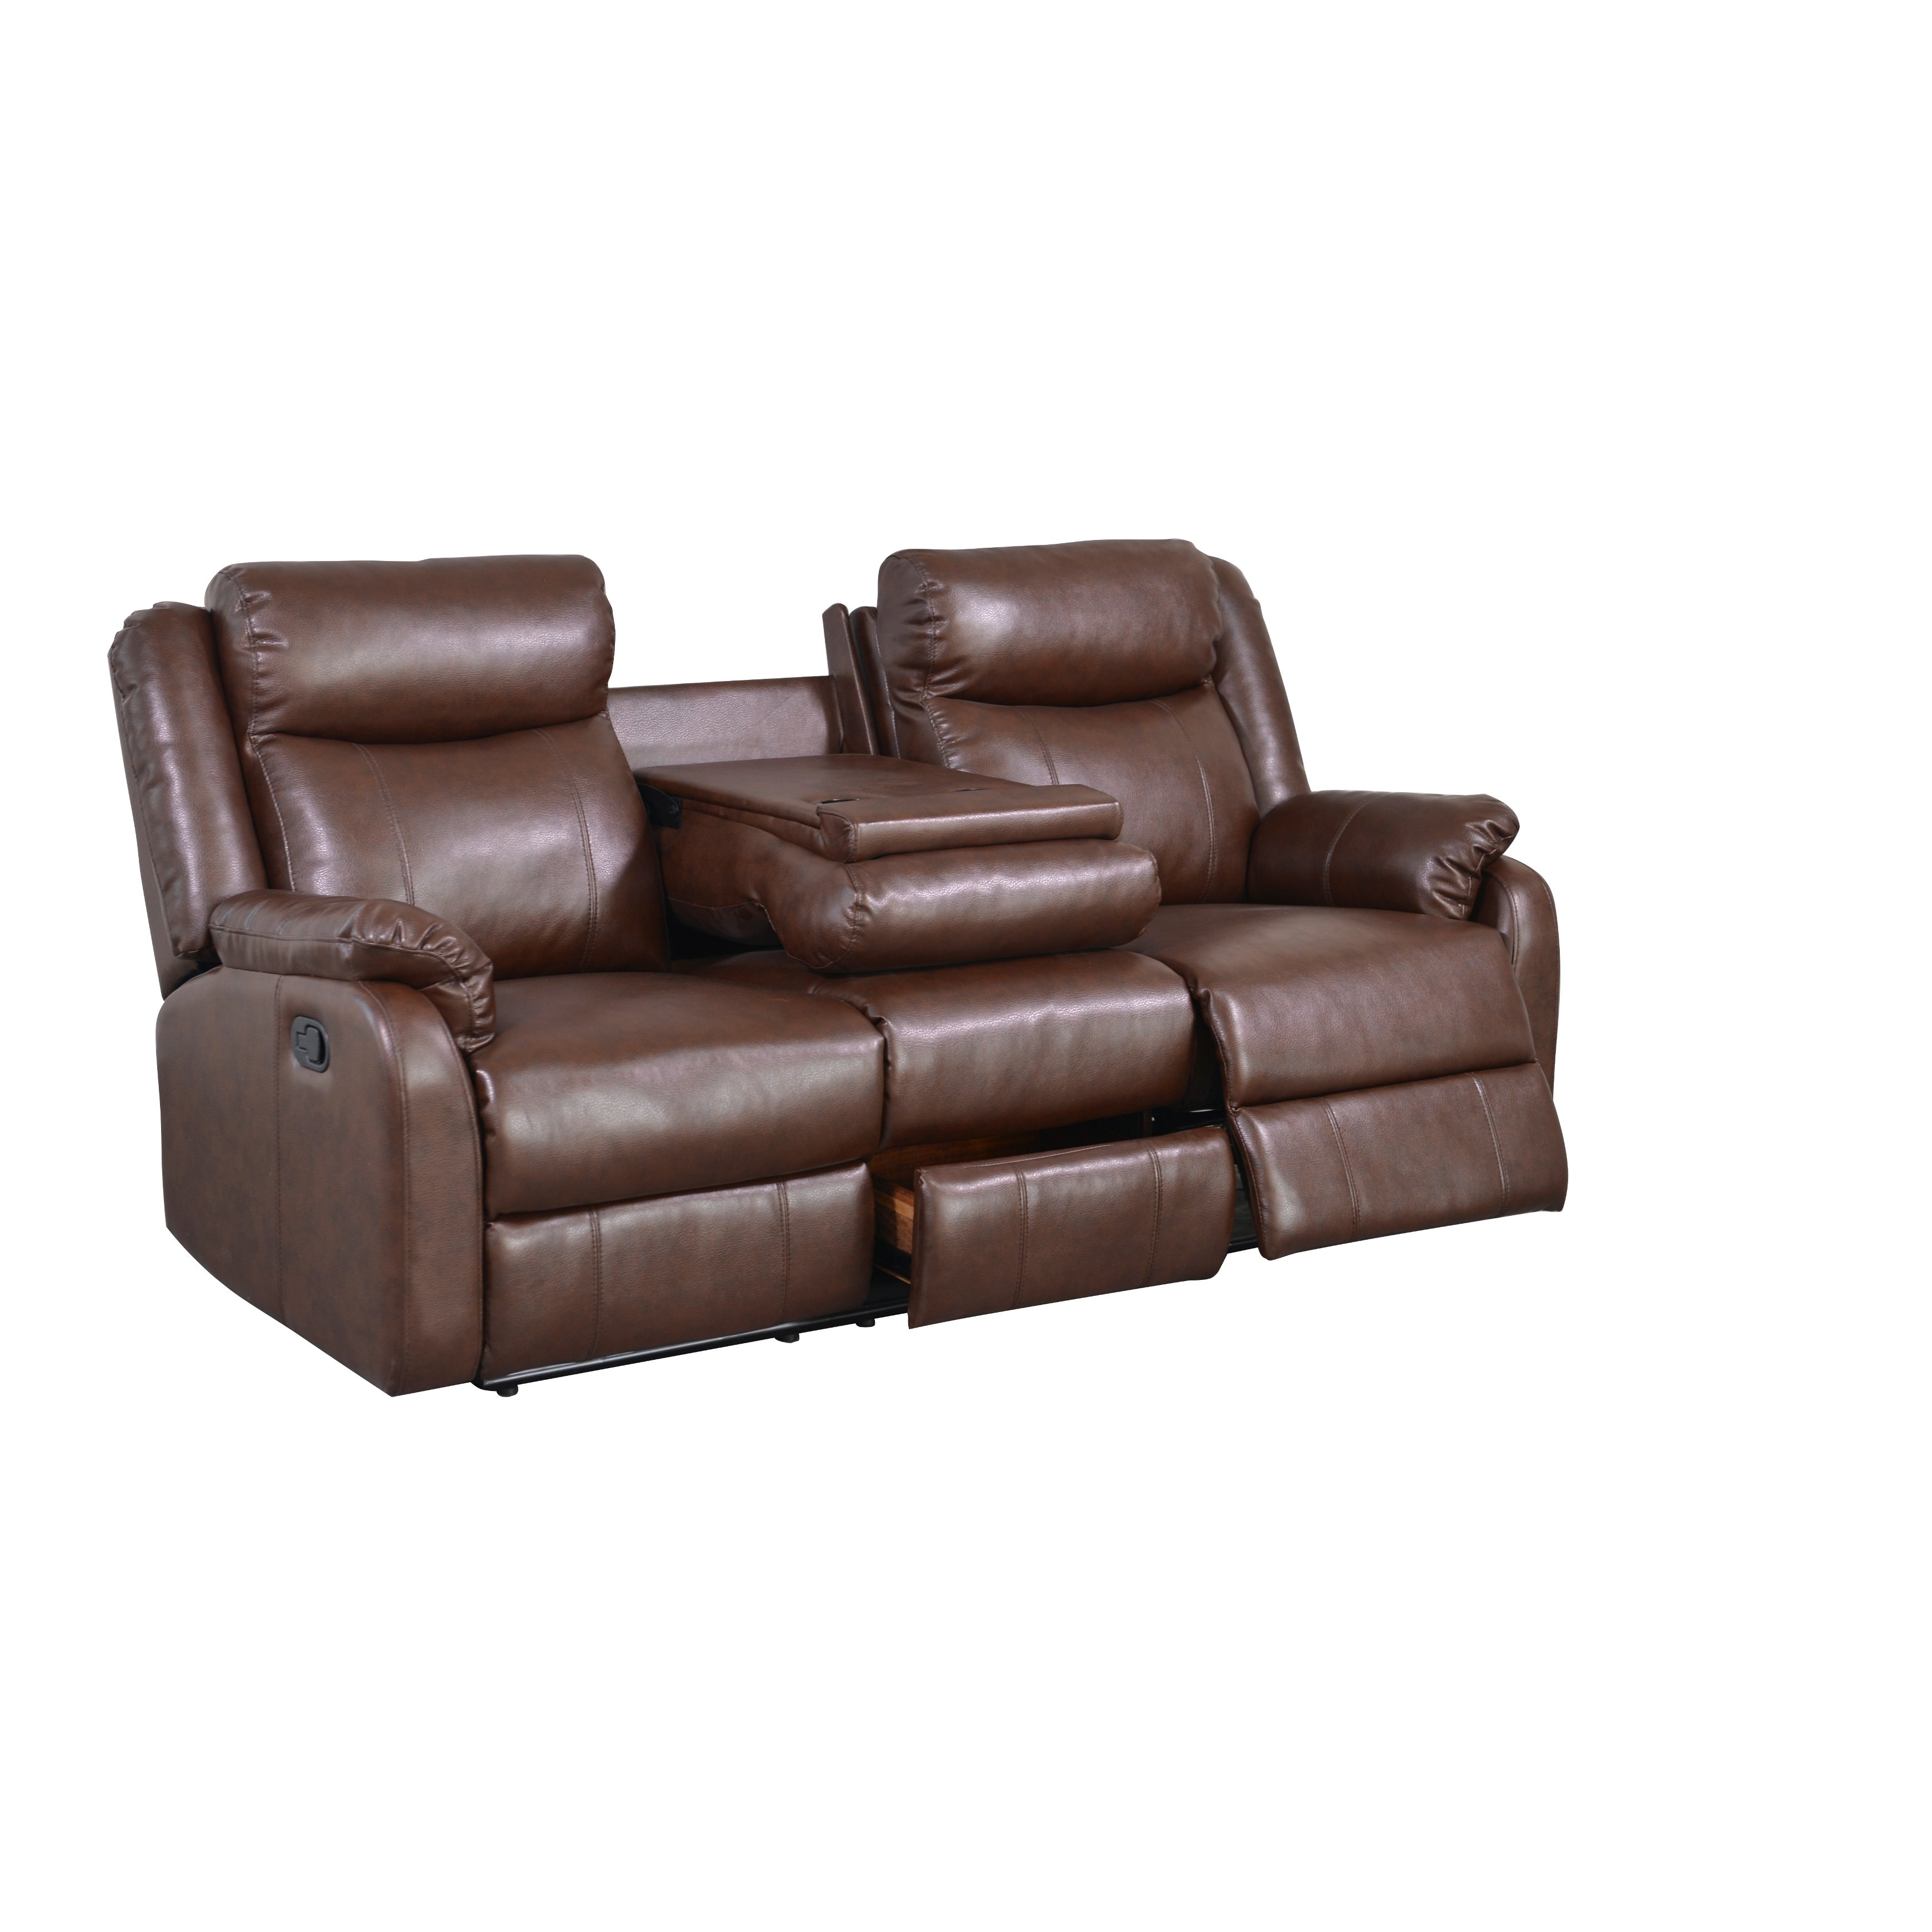 Overstock.com Brown Bonded Leather Double Recliner with Table Console at Sears.com